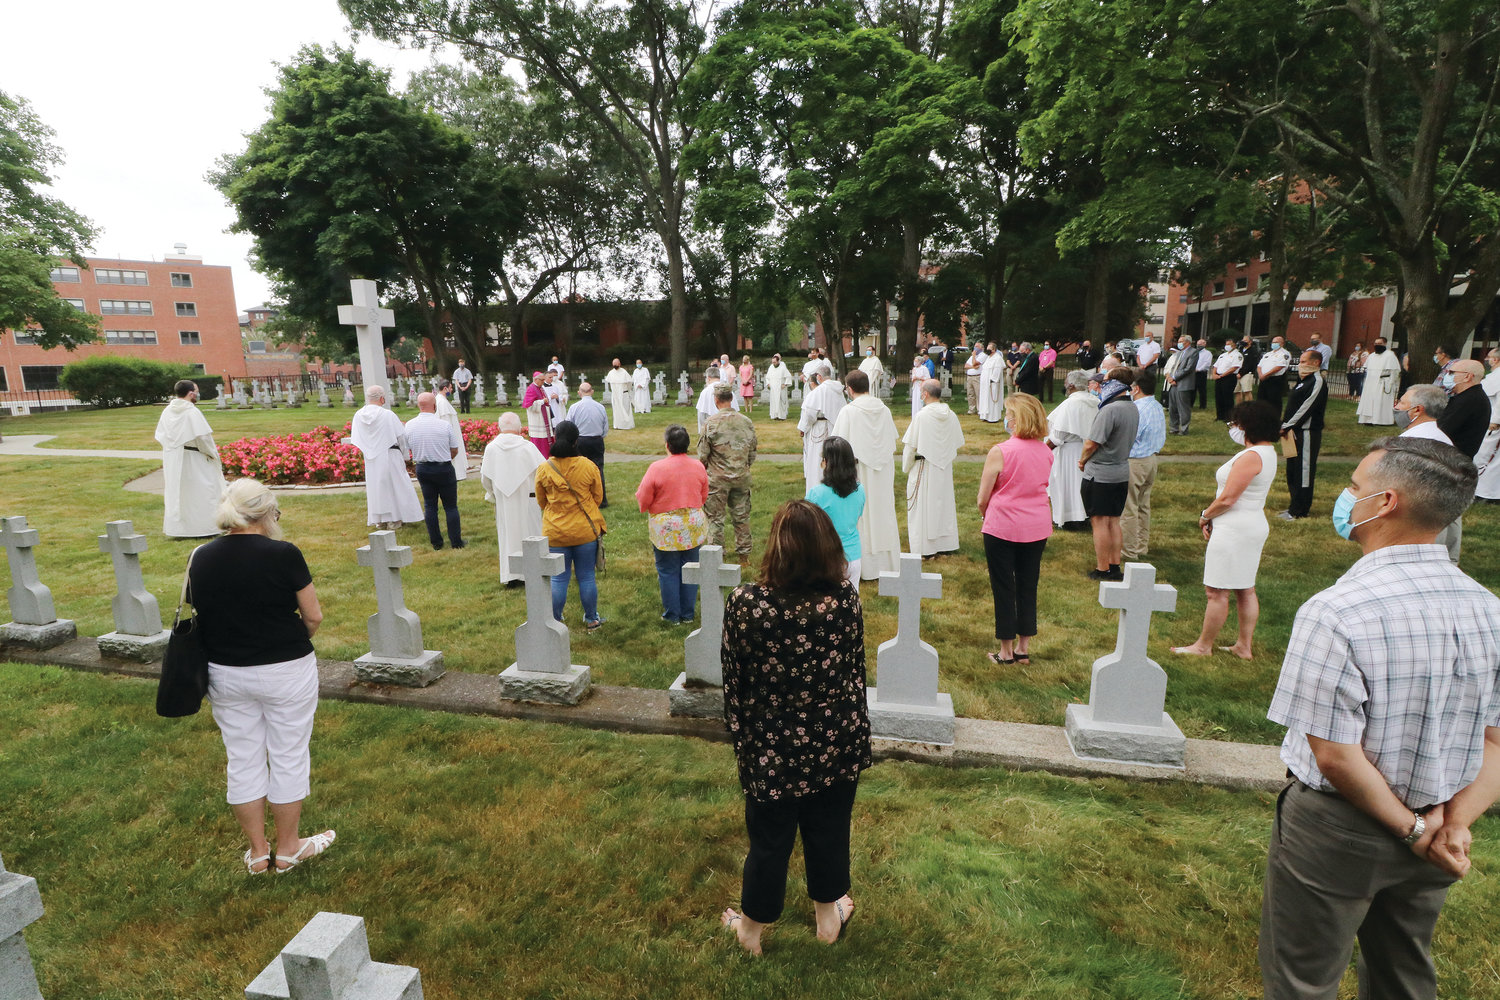 About 75 friars and members of the Providence College community gathered for the solemn ceremony during which Bishop Thomas J. Tobin blessed the grounds with holy water and incense — including the large granite crucifix standing in a garden of flowers at the center of the cemetery — as he offered prayers of consecration.